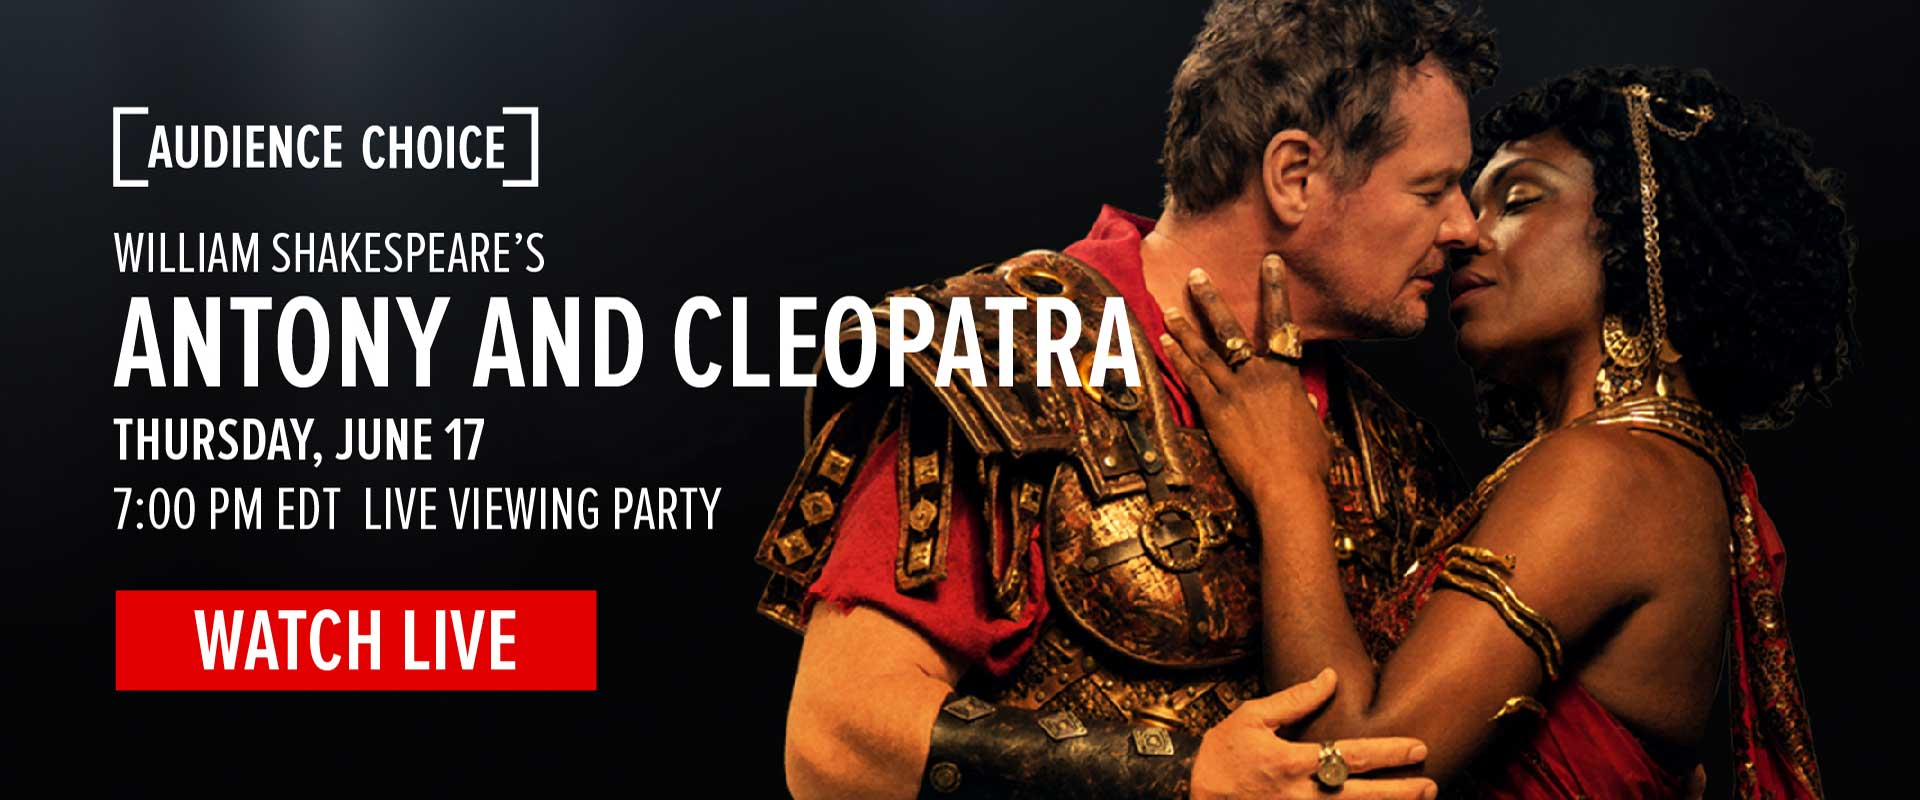 Audience Choice live viewing party for Antony and Cleopatra, Thursday June 17, 7:00 PM EDT - Watch Live